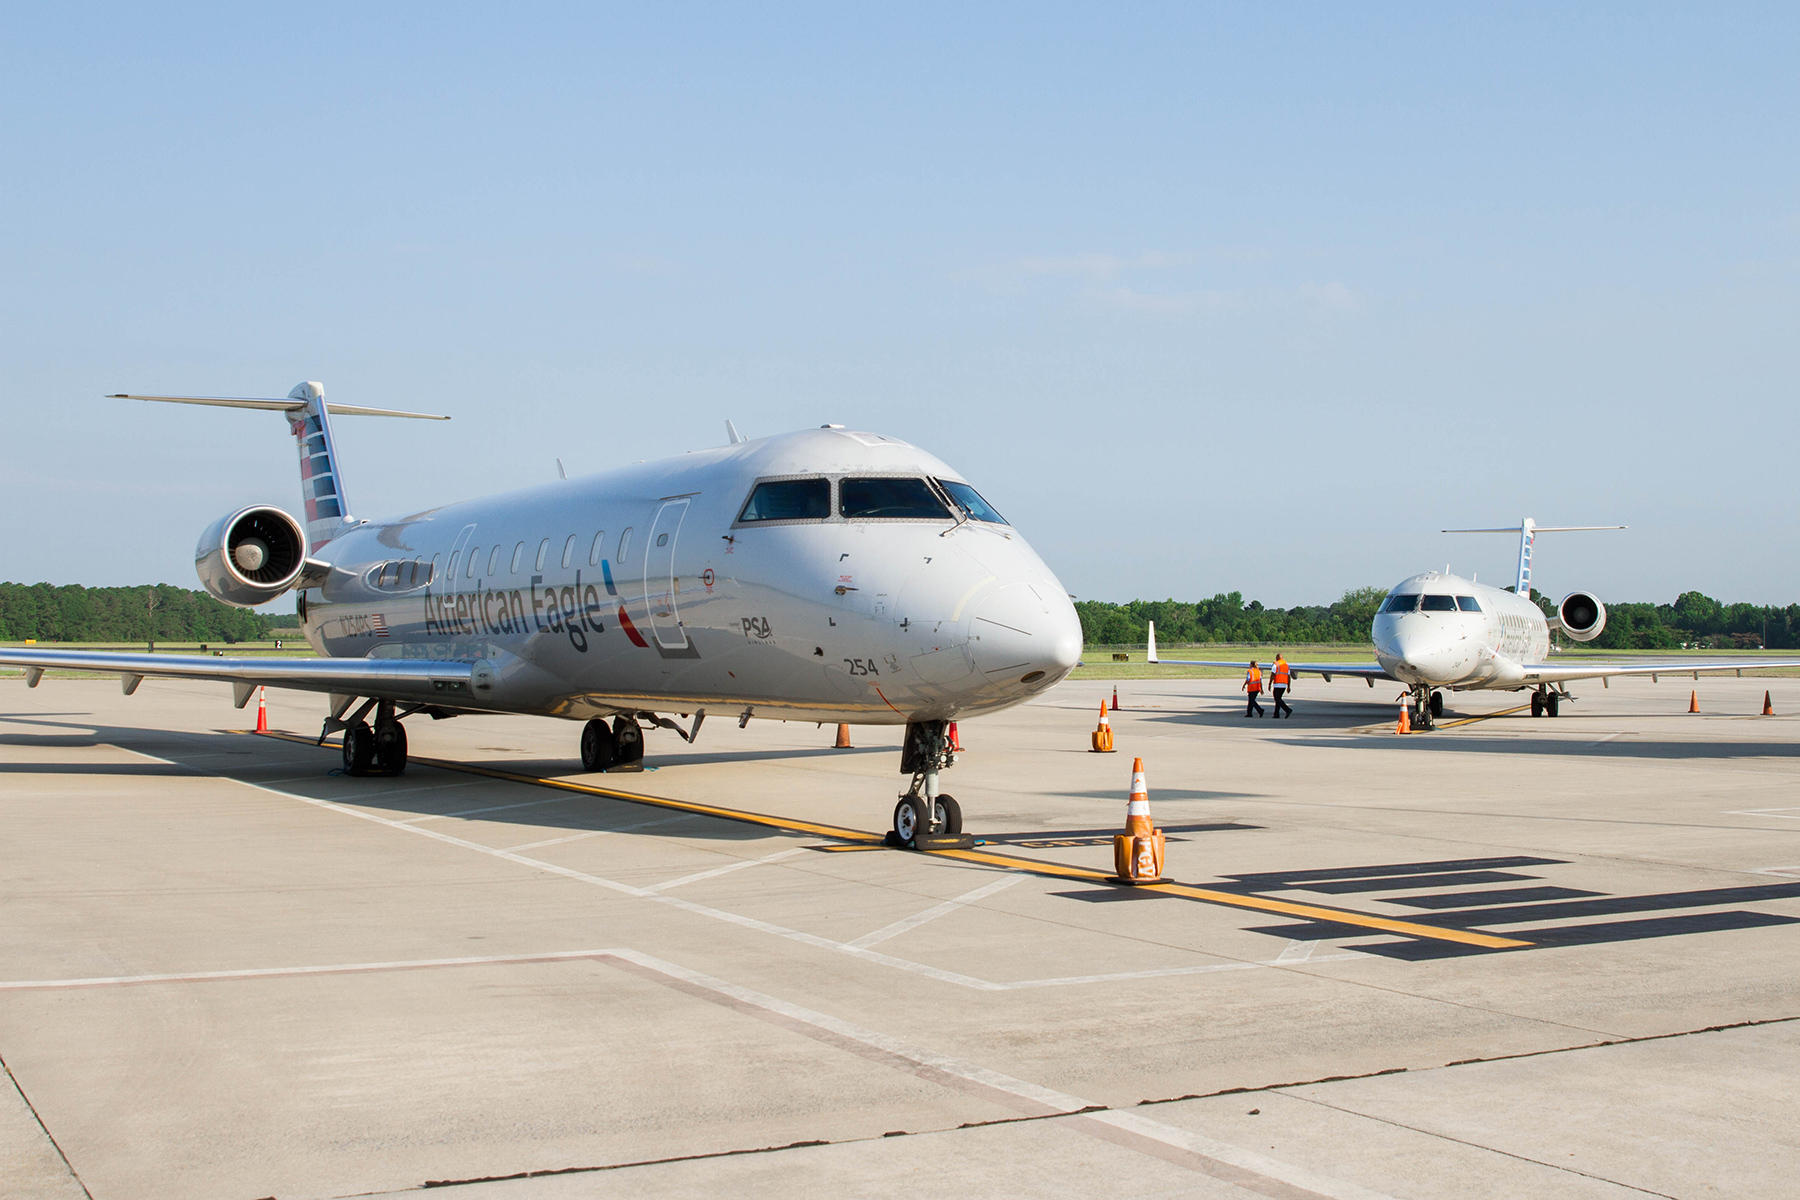 2 American Airlines aircrafts on runway